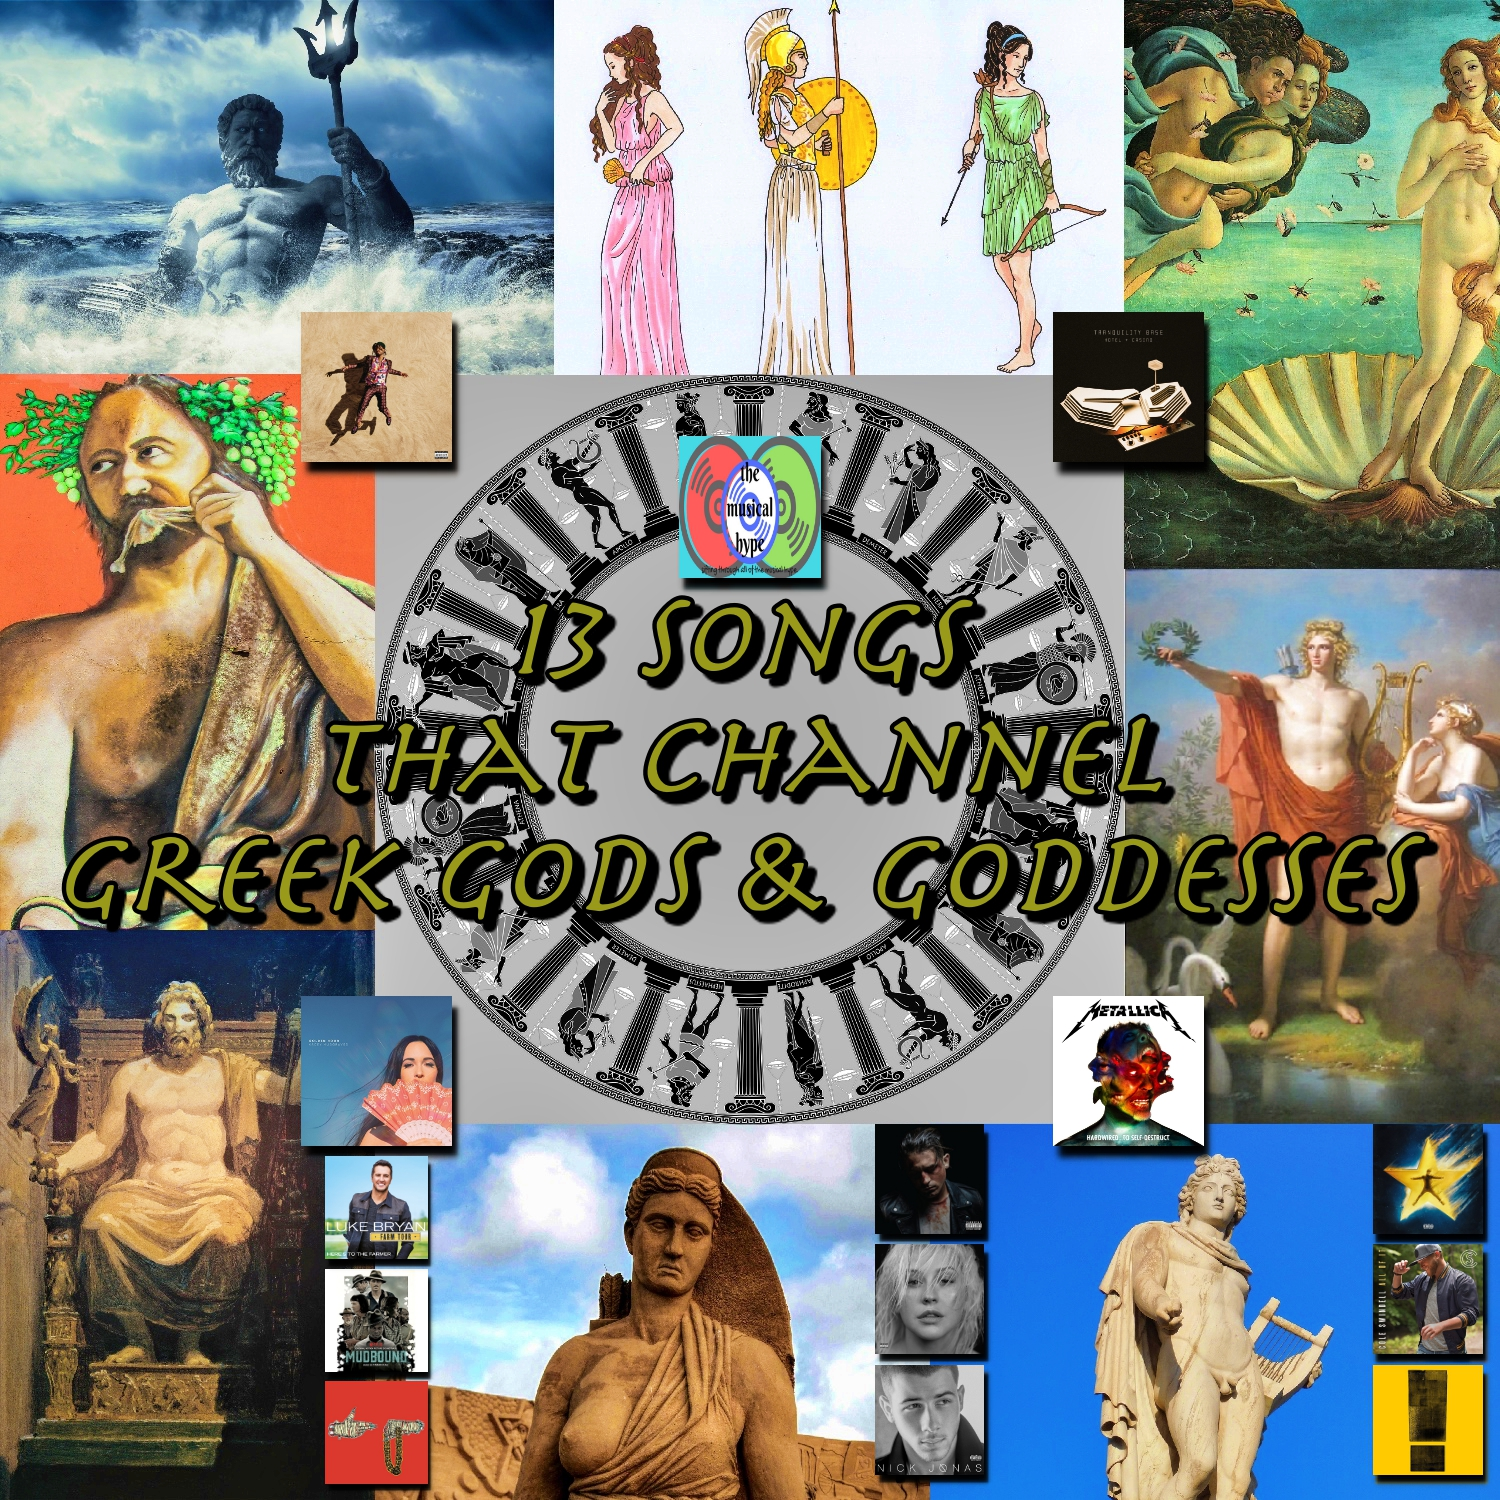 13 Songs that Channel Greek Gods & Goddesses | Playlist